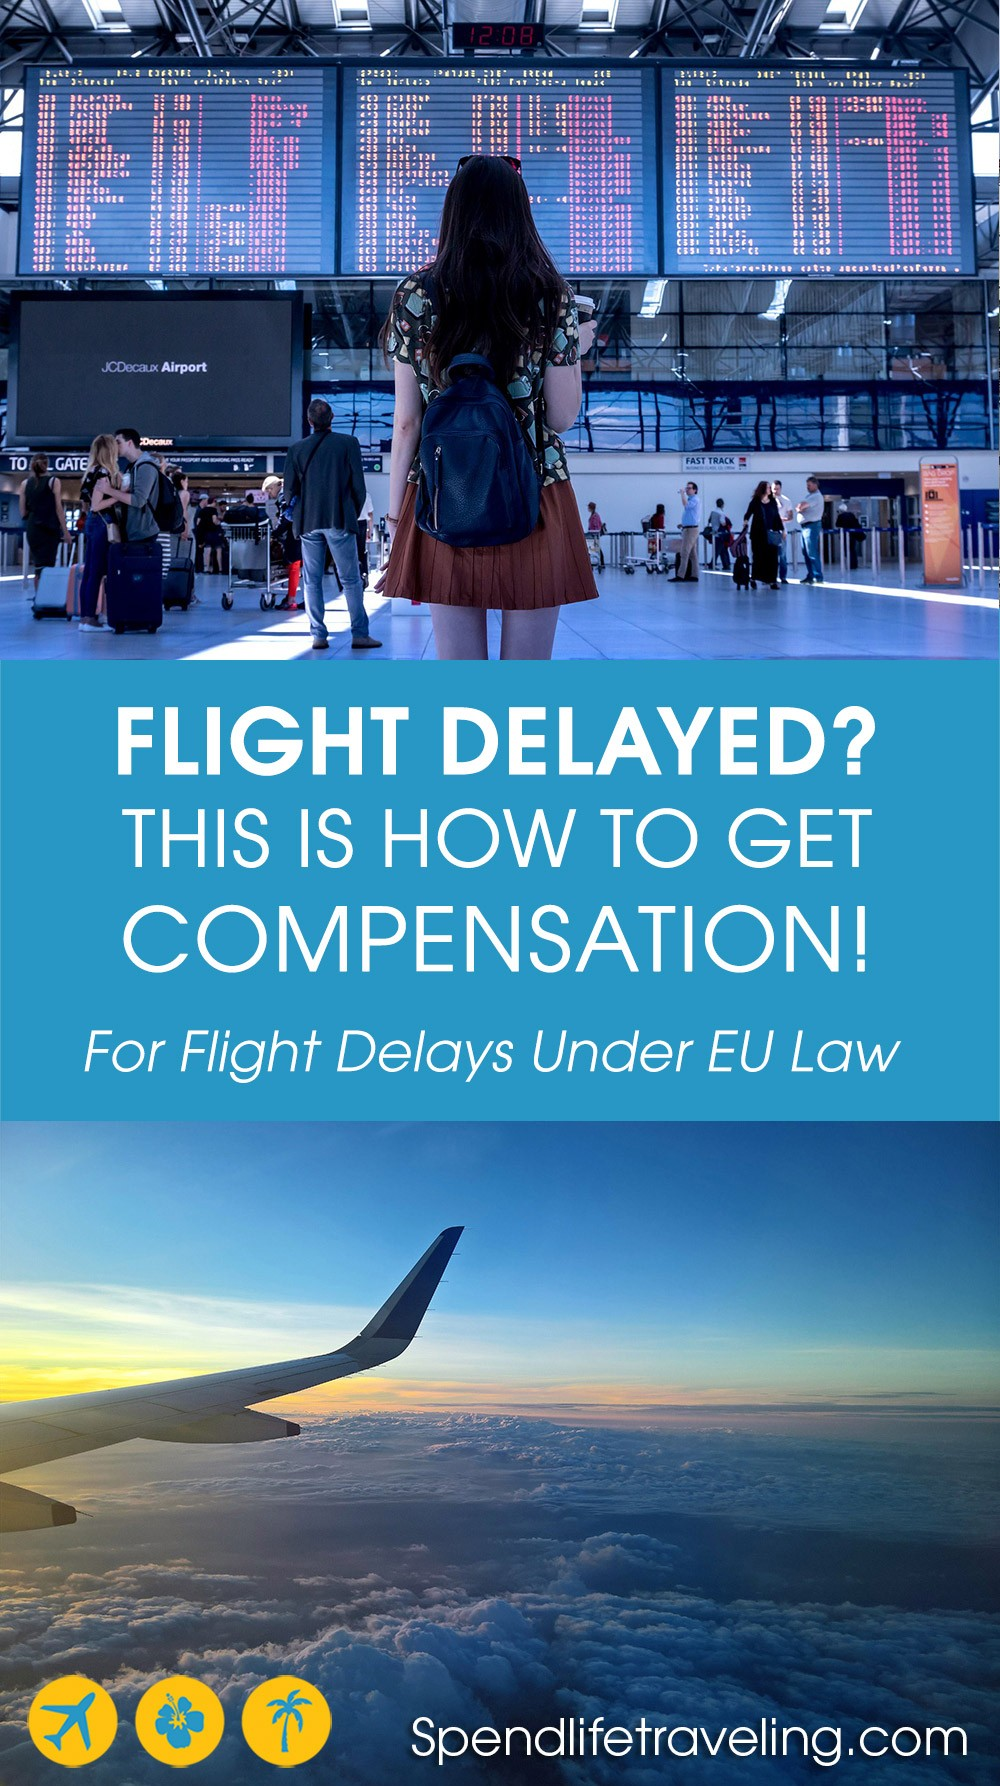 This is what you need to know about if and how you can get compensation for a delayed or cancelled flight. Even if you didn't stay in the EU you could get compensation! #flightcompensation #delayedflight #cancelledflight